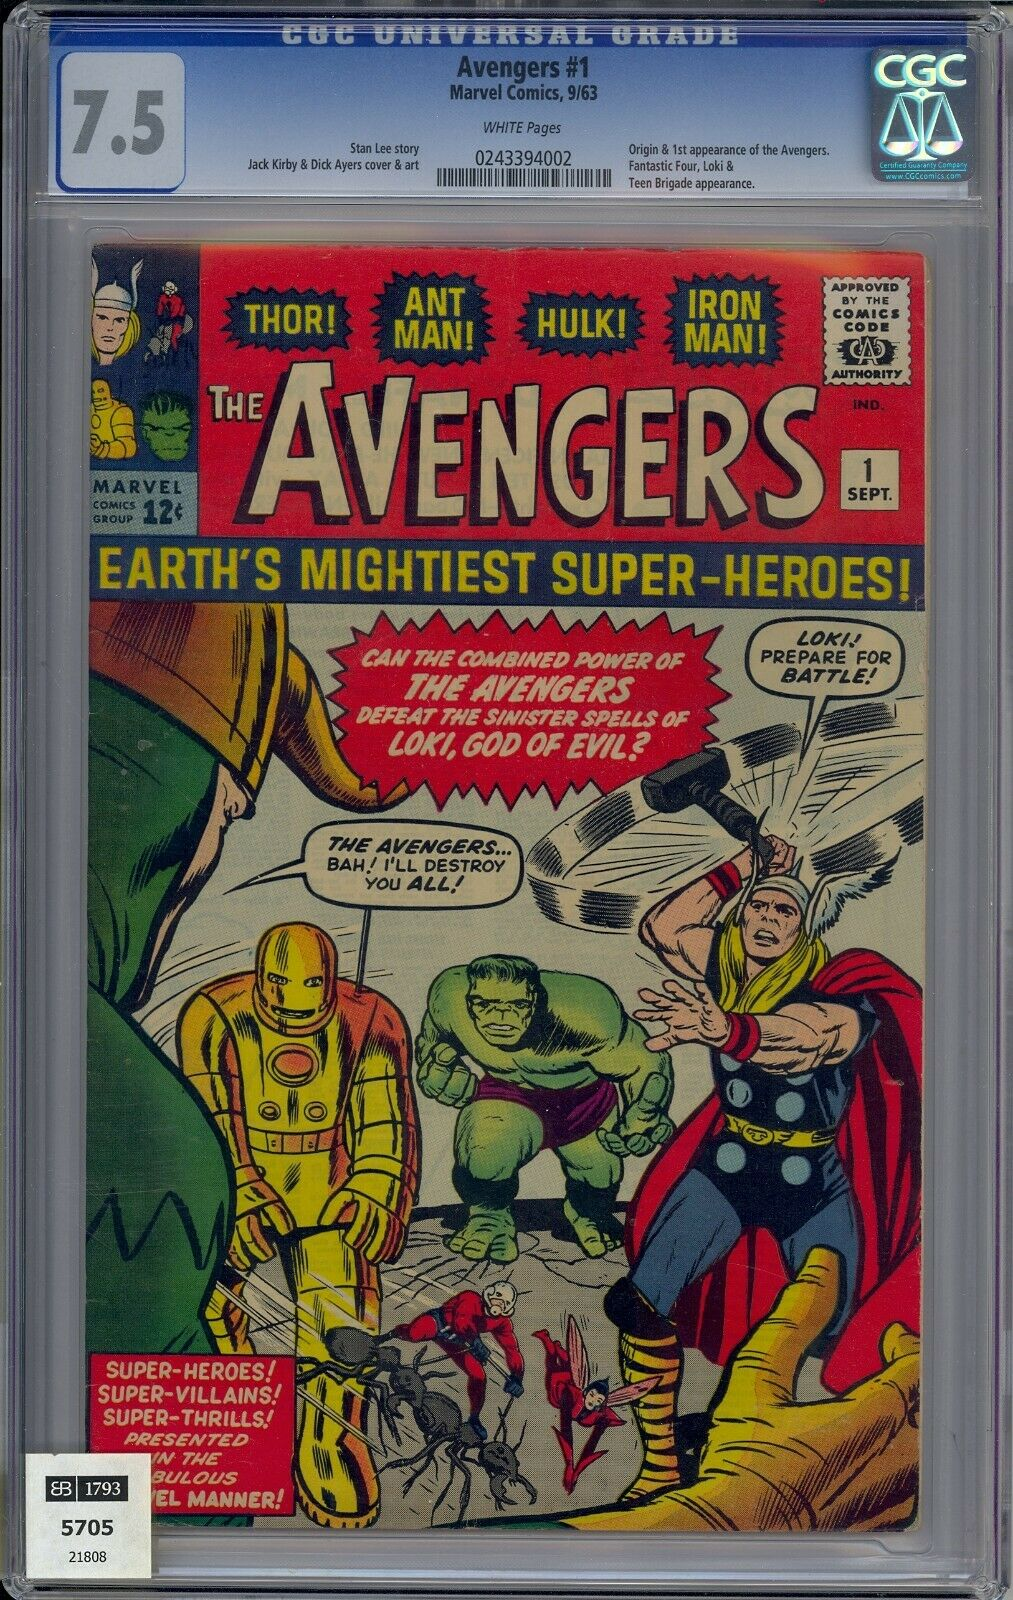 AVENGERS 1 CGC 7.5 WHITE PAGES 1963 1ST APPEARANCE NEVER PRESSED LOOKS 8.0+